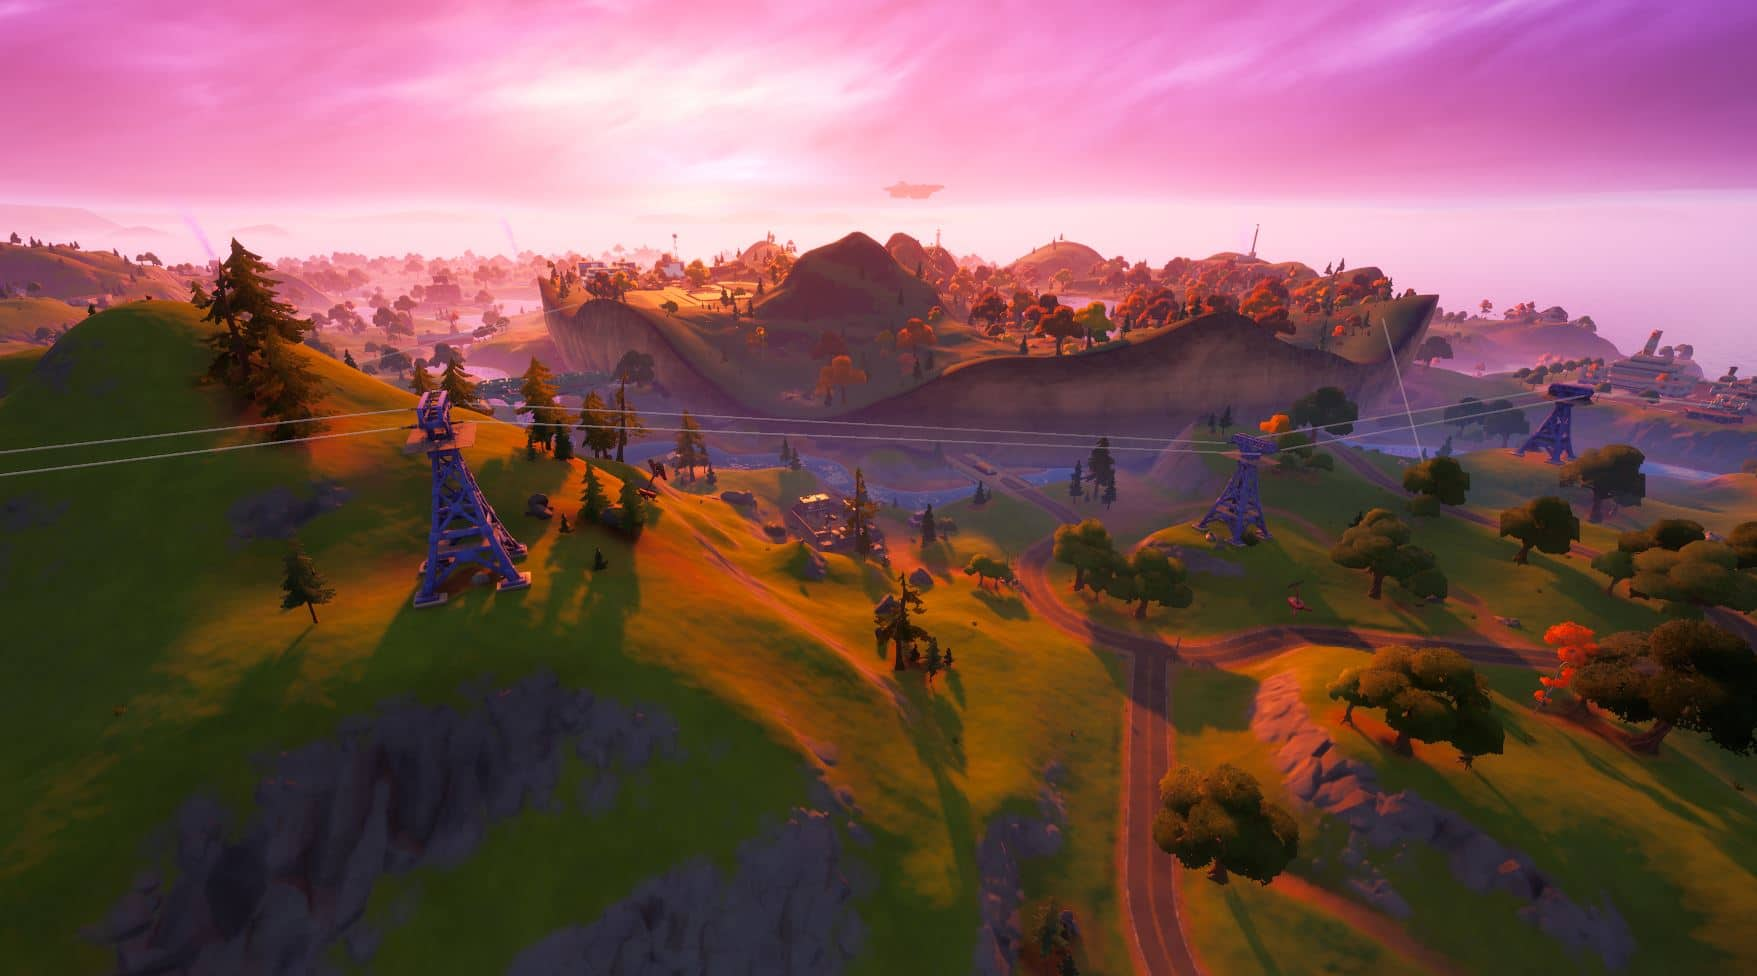 Tirolinas de Fortnite: tirolina desde Retail Row hasta Steamy Stacks